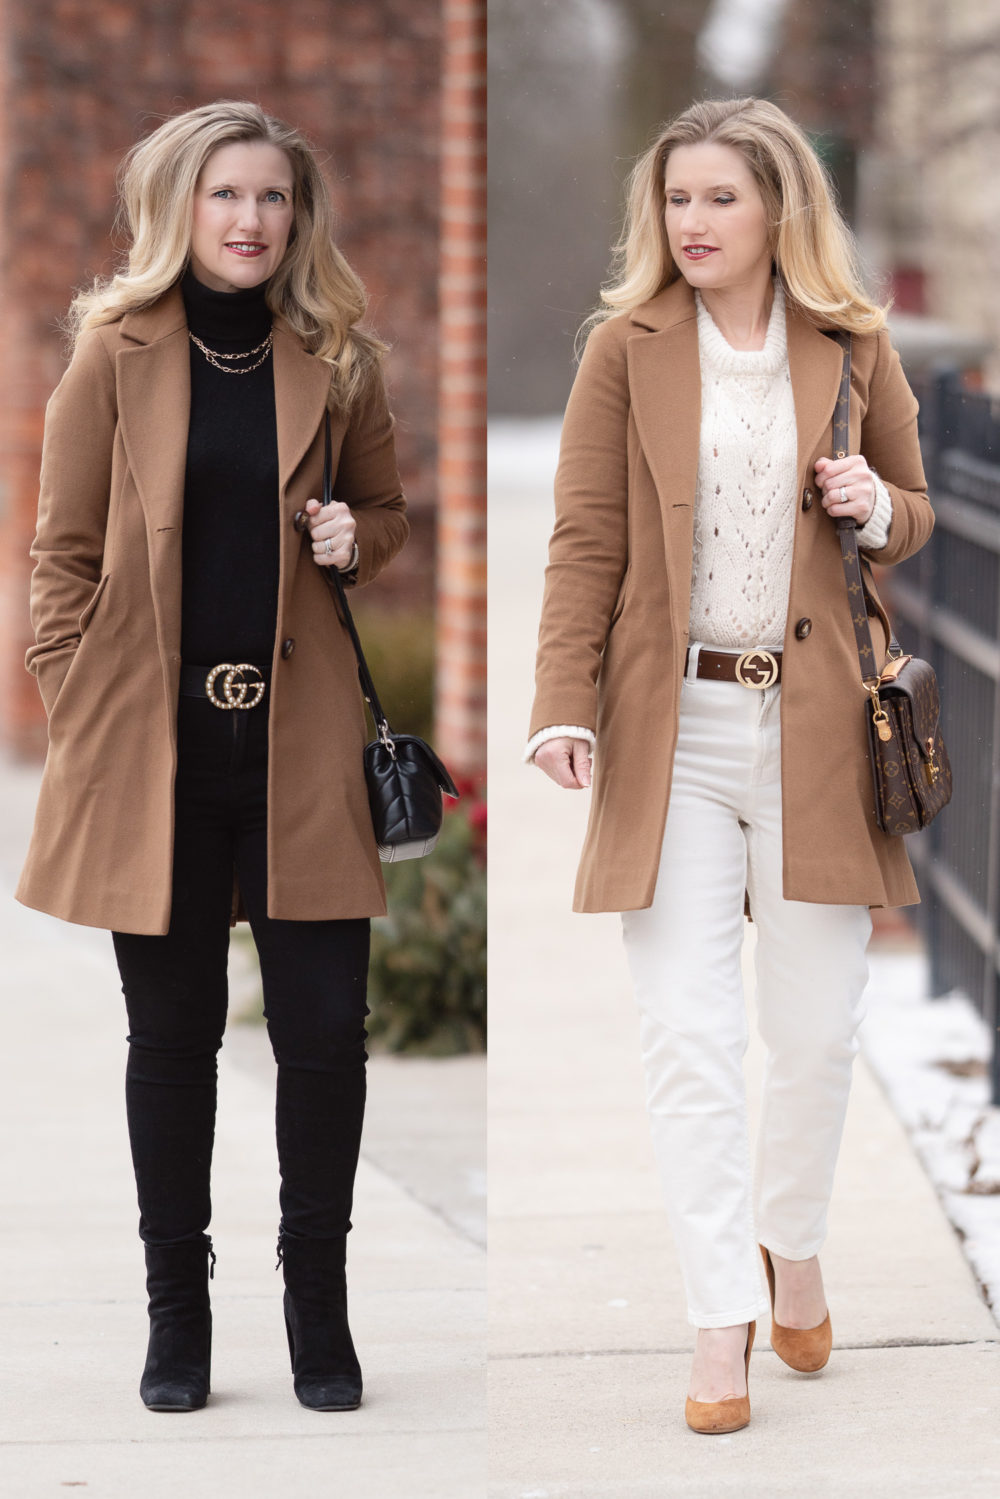 Petite Fashion Blog | Petite Style | Fleurette Notch Collar Wool Coat | Gucci Pearl Belt | Lark and Ro Cashmere Turtleneck | Everlane High Rise Straight Leg Jeans | Topshop Pointelle Lace Sweater | Camel Coat